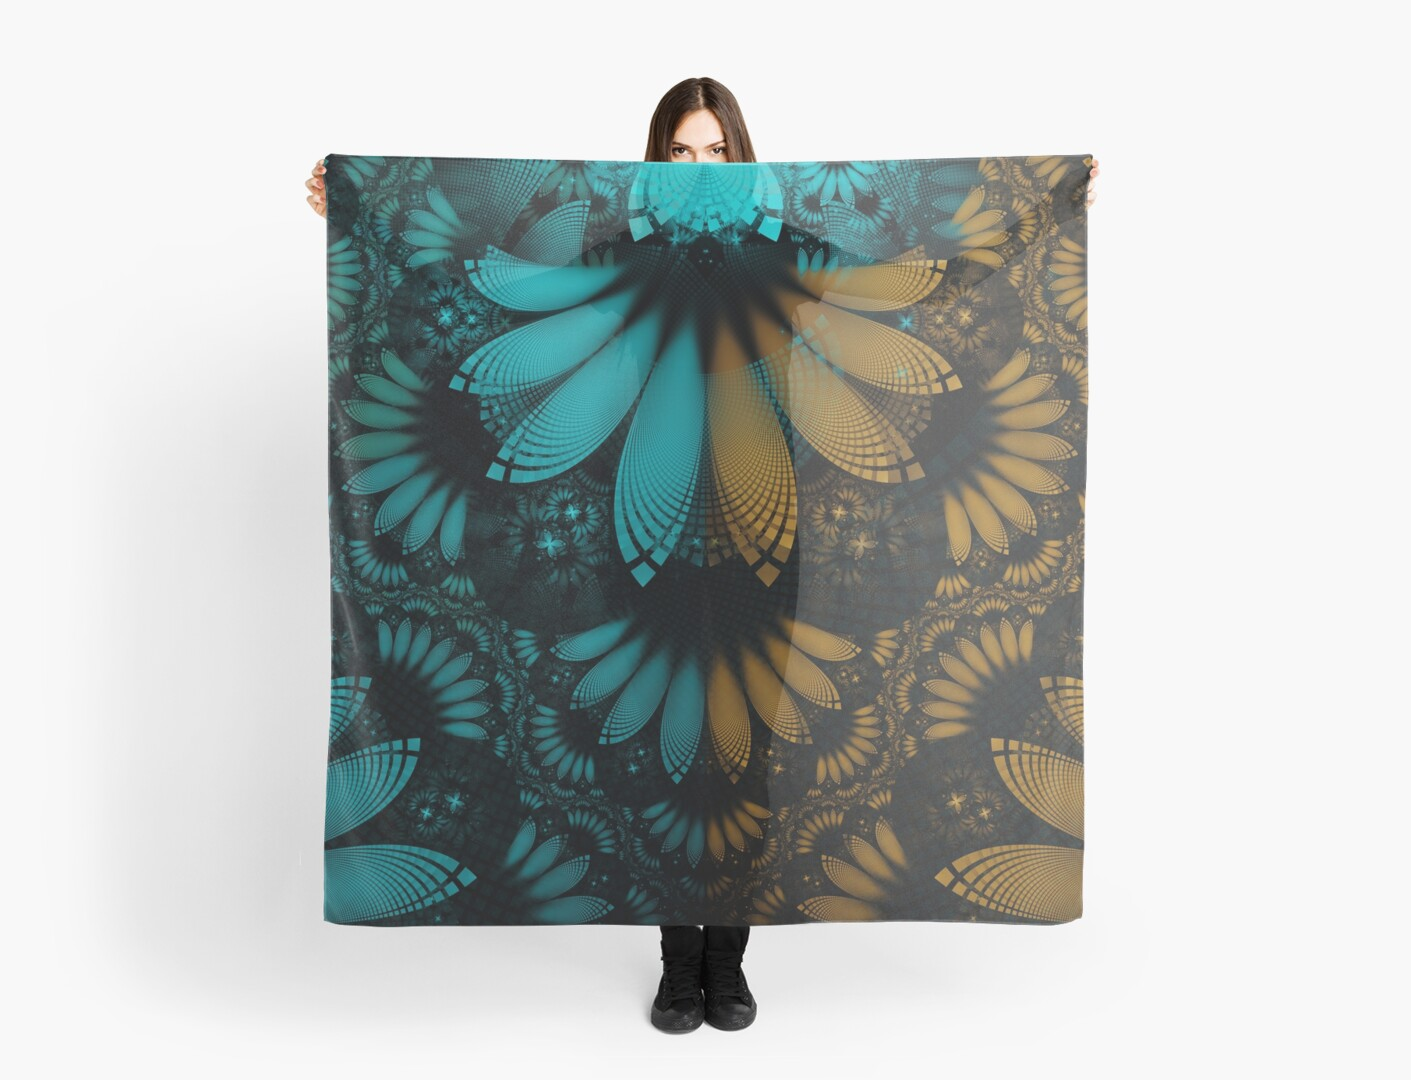 Shikoba Fractal -- Beautiful Leather, Feathers, and Turquoise by Jaya Prime